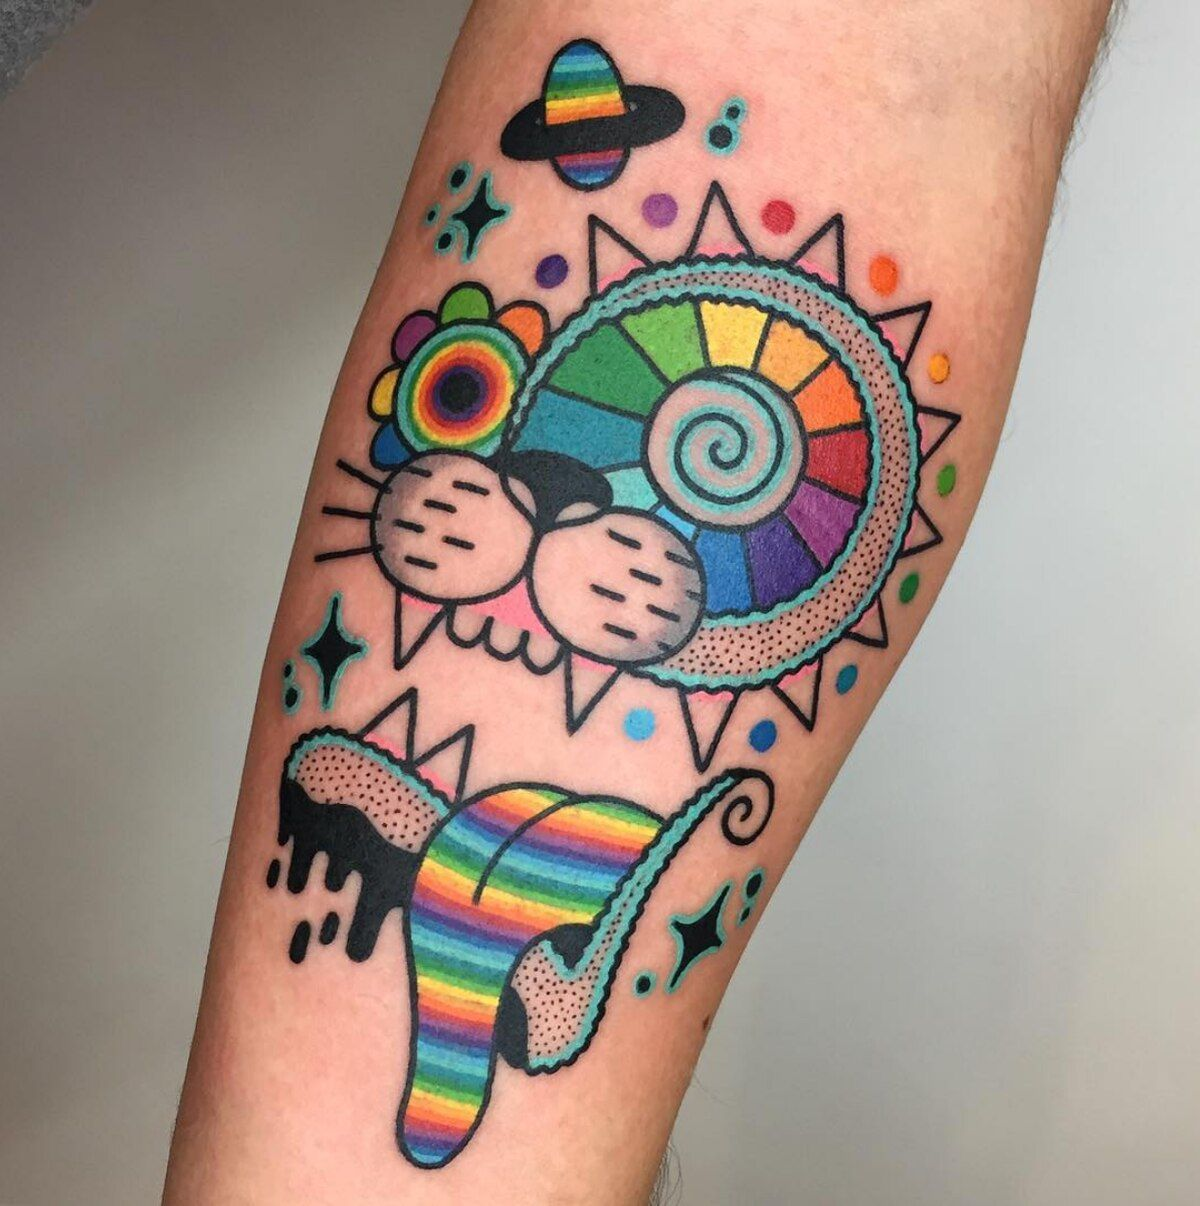 Small Acid Tattoo: Before There Was The Psychedelic Tattoo Artist Winston The